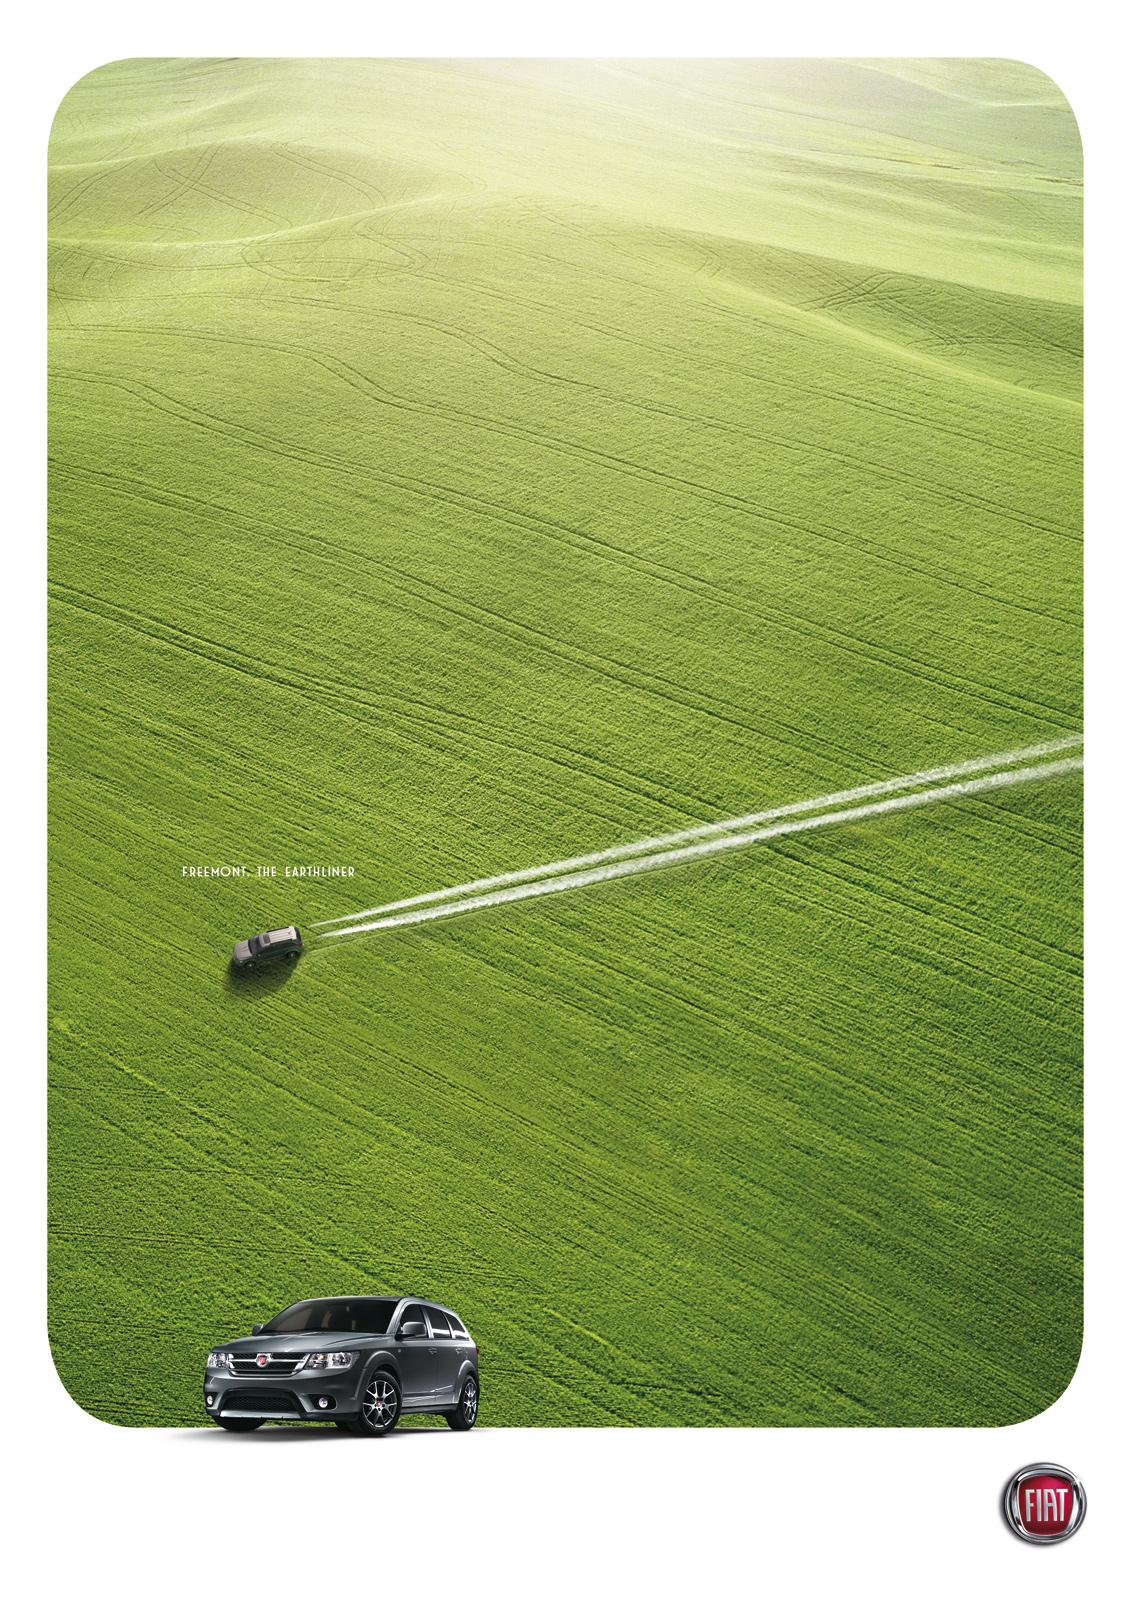 Fiat Print Ad -  The earthliner, 2